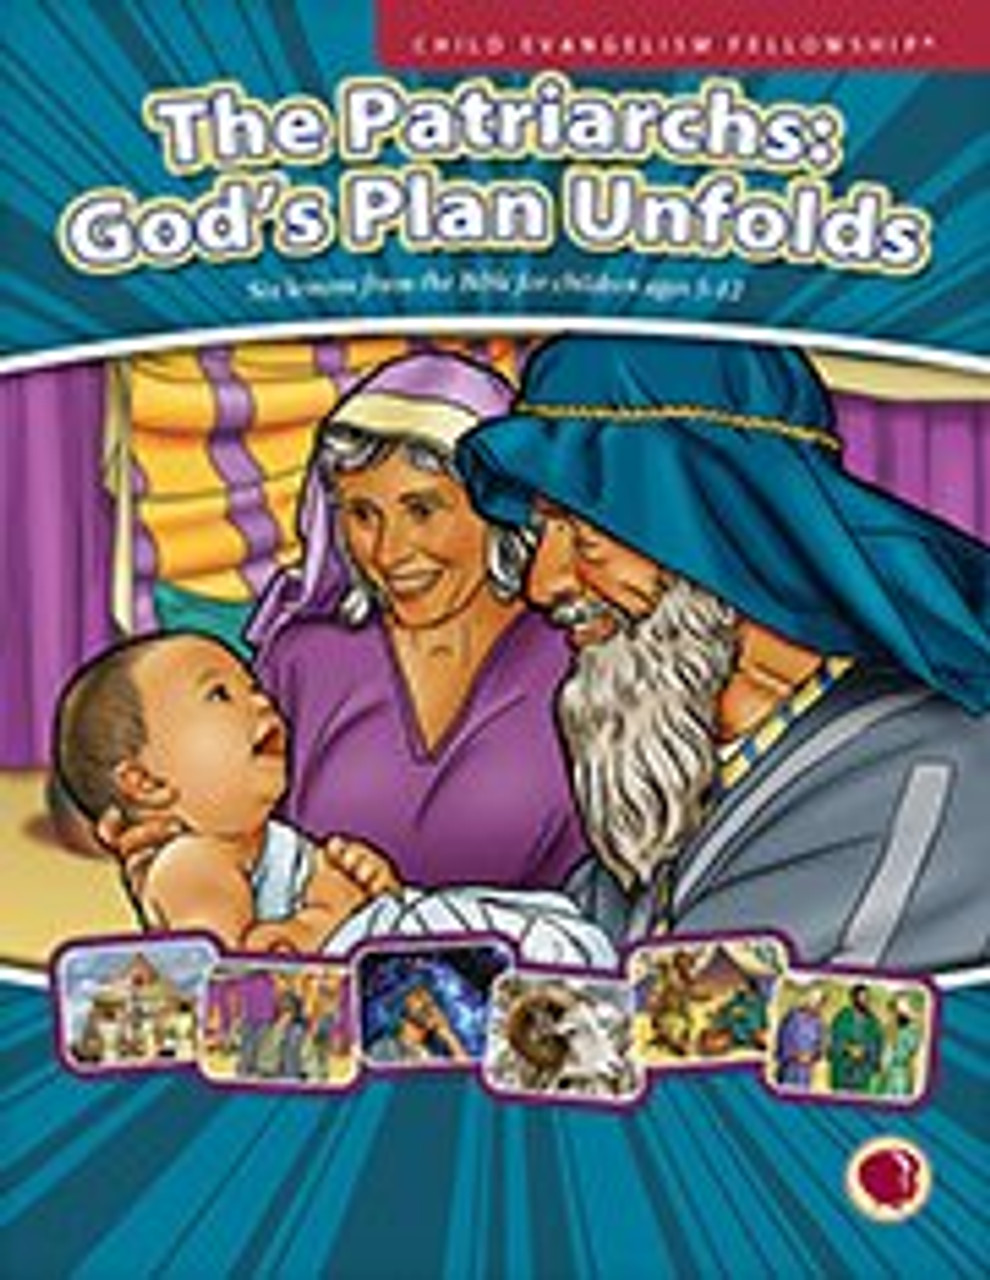 The Patriarchs: God's Plan Unfolds (text book) 2017